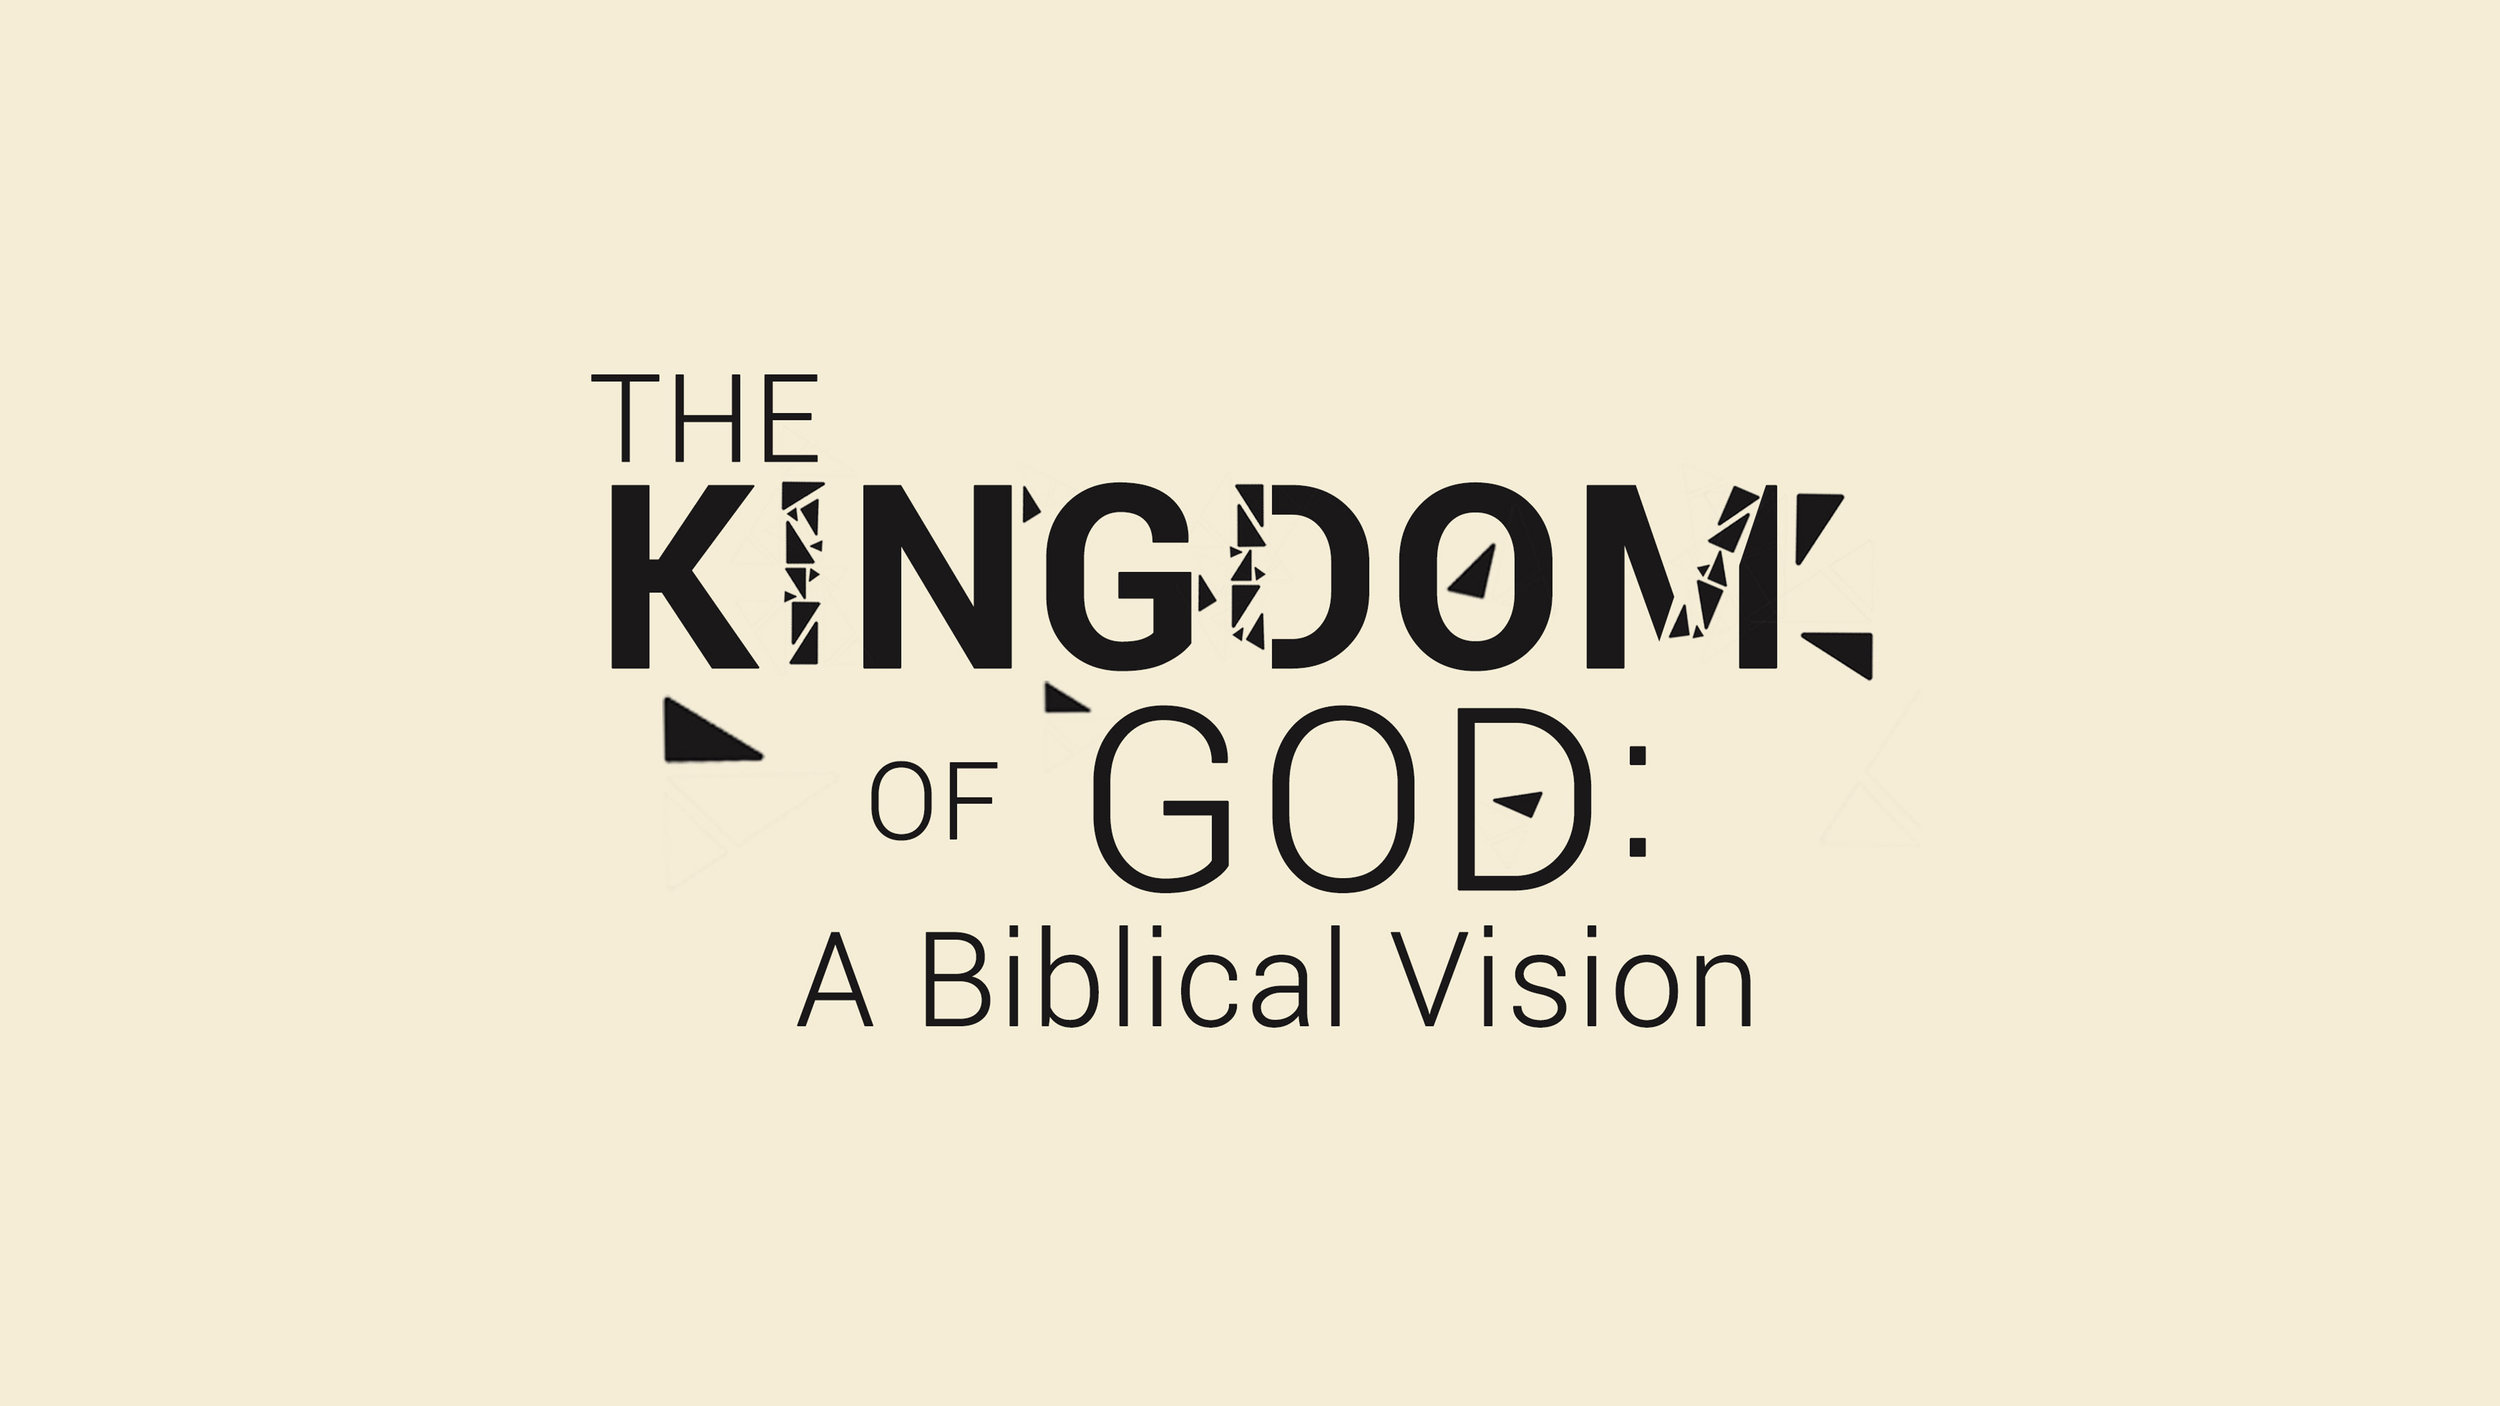 The Kingdom of God: A Biblical Vision   (January-March)   What is the Kingdom of God and how can we experience it in our everyday lives? This series addresses these and other related questions, exploring pictures of the Kingdom in the Old Testament, the Kingdom in the message and ministry of Jesus, and the Kingdom in the ongoing life of the church.